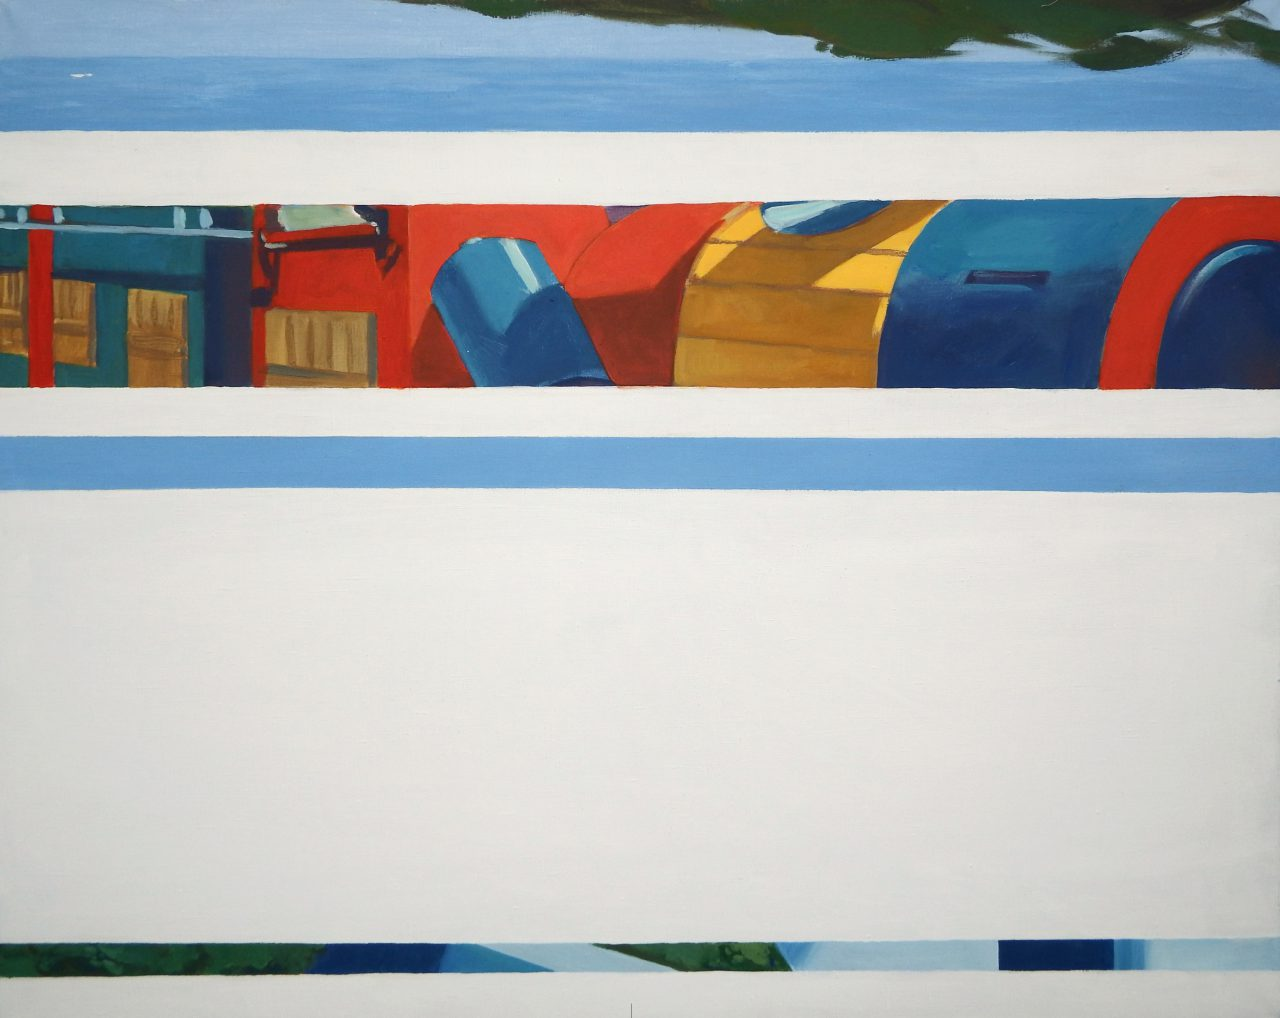 City of childhood / a series of painting / 100x125cm, acrilic on canvas